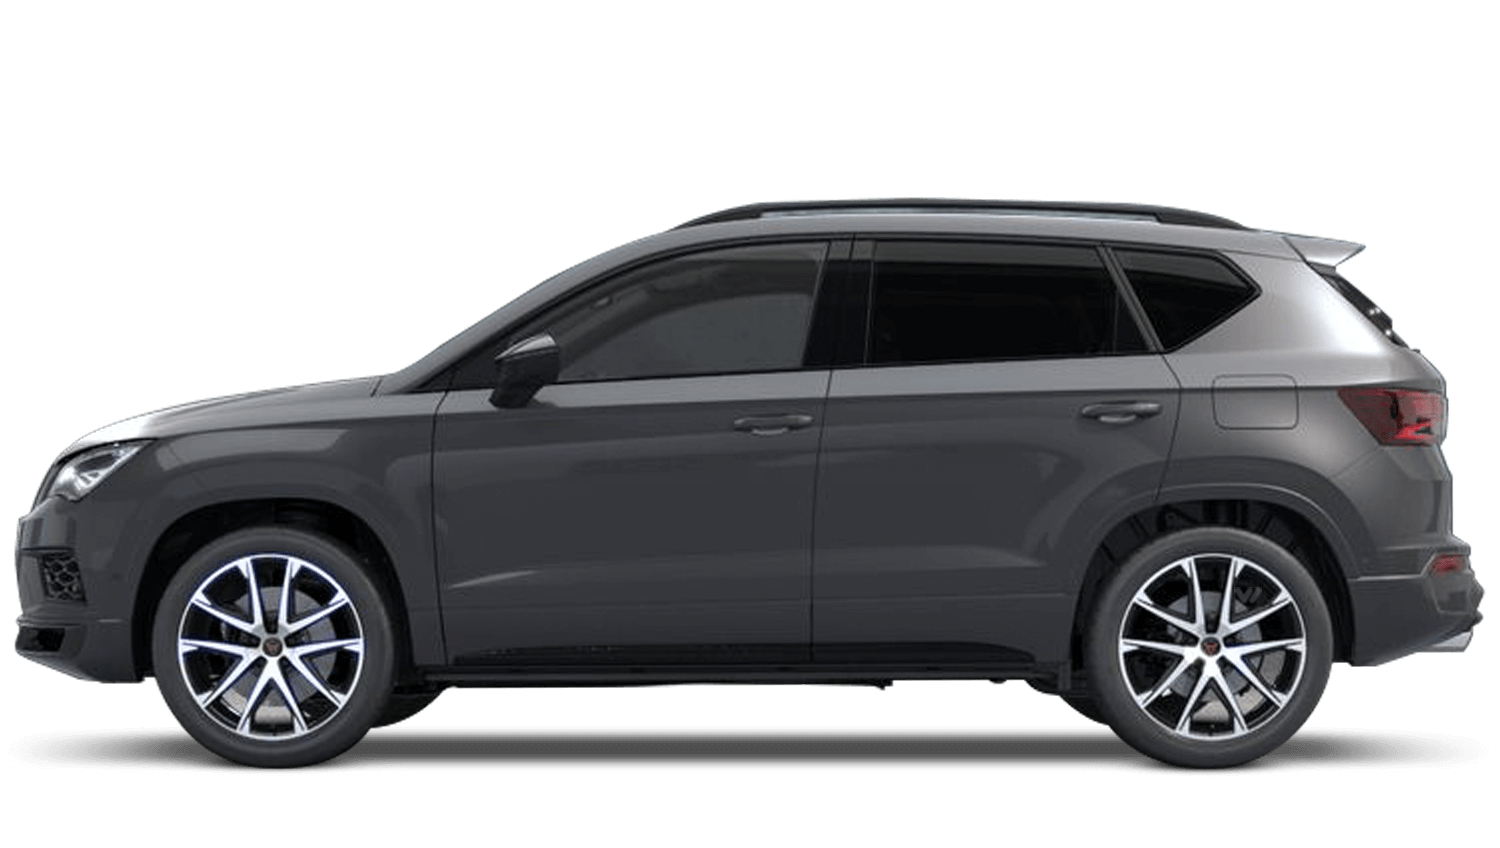 Rhodium Grey (Metallic) CUPRA Ateca